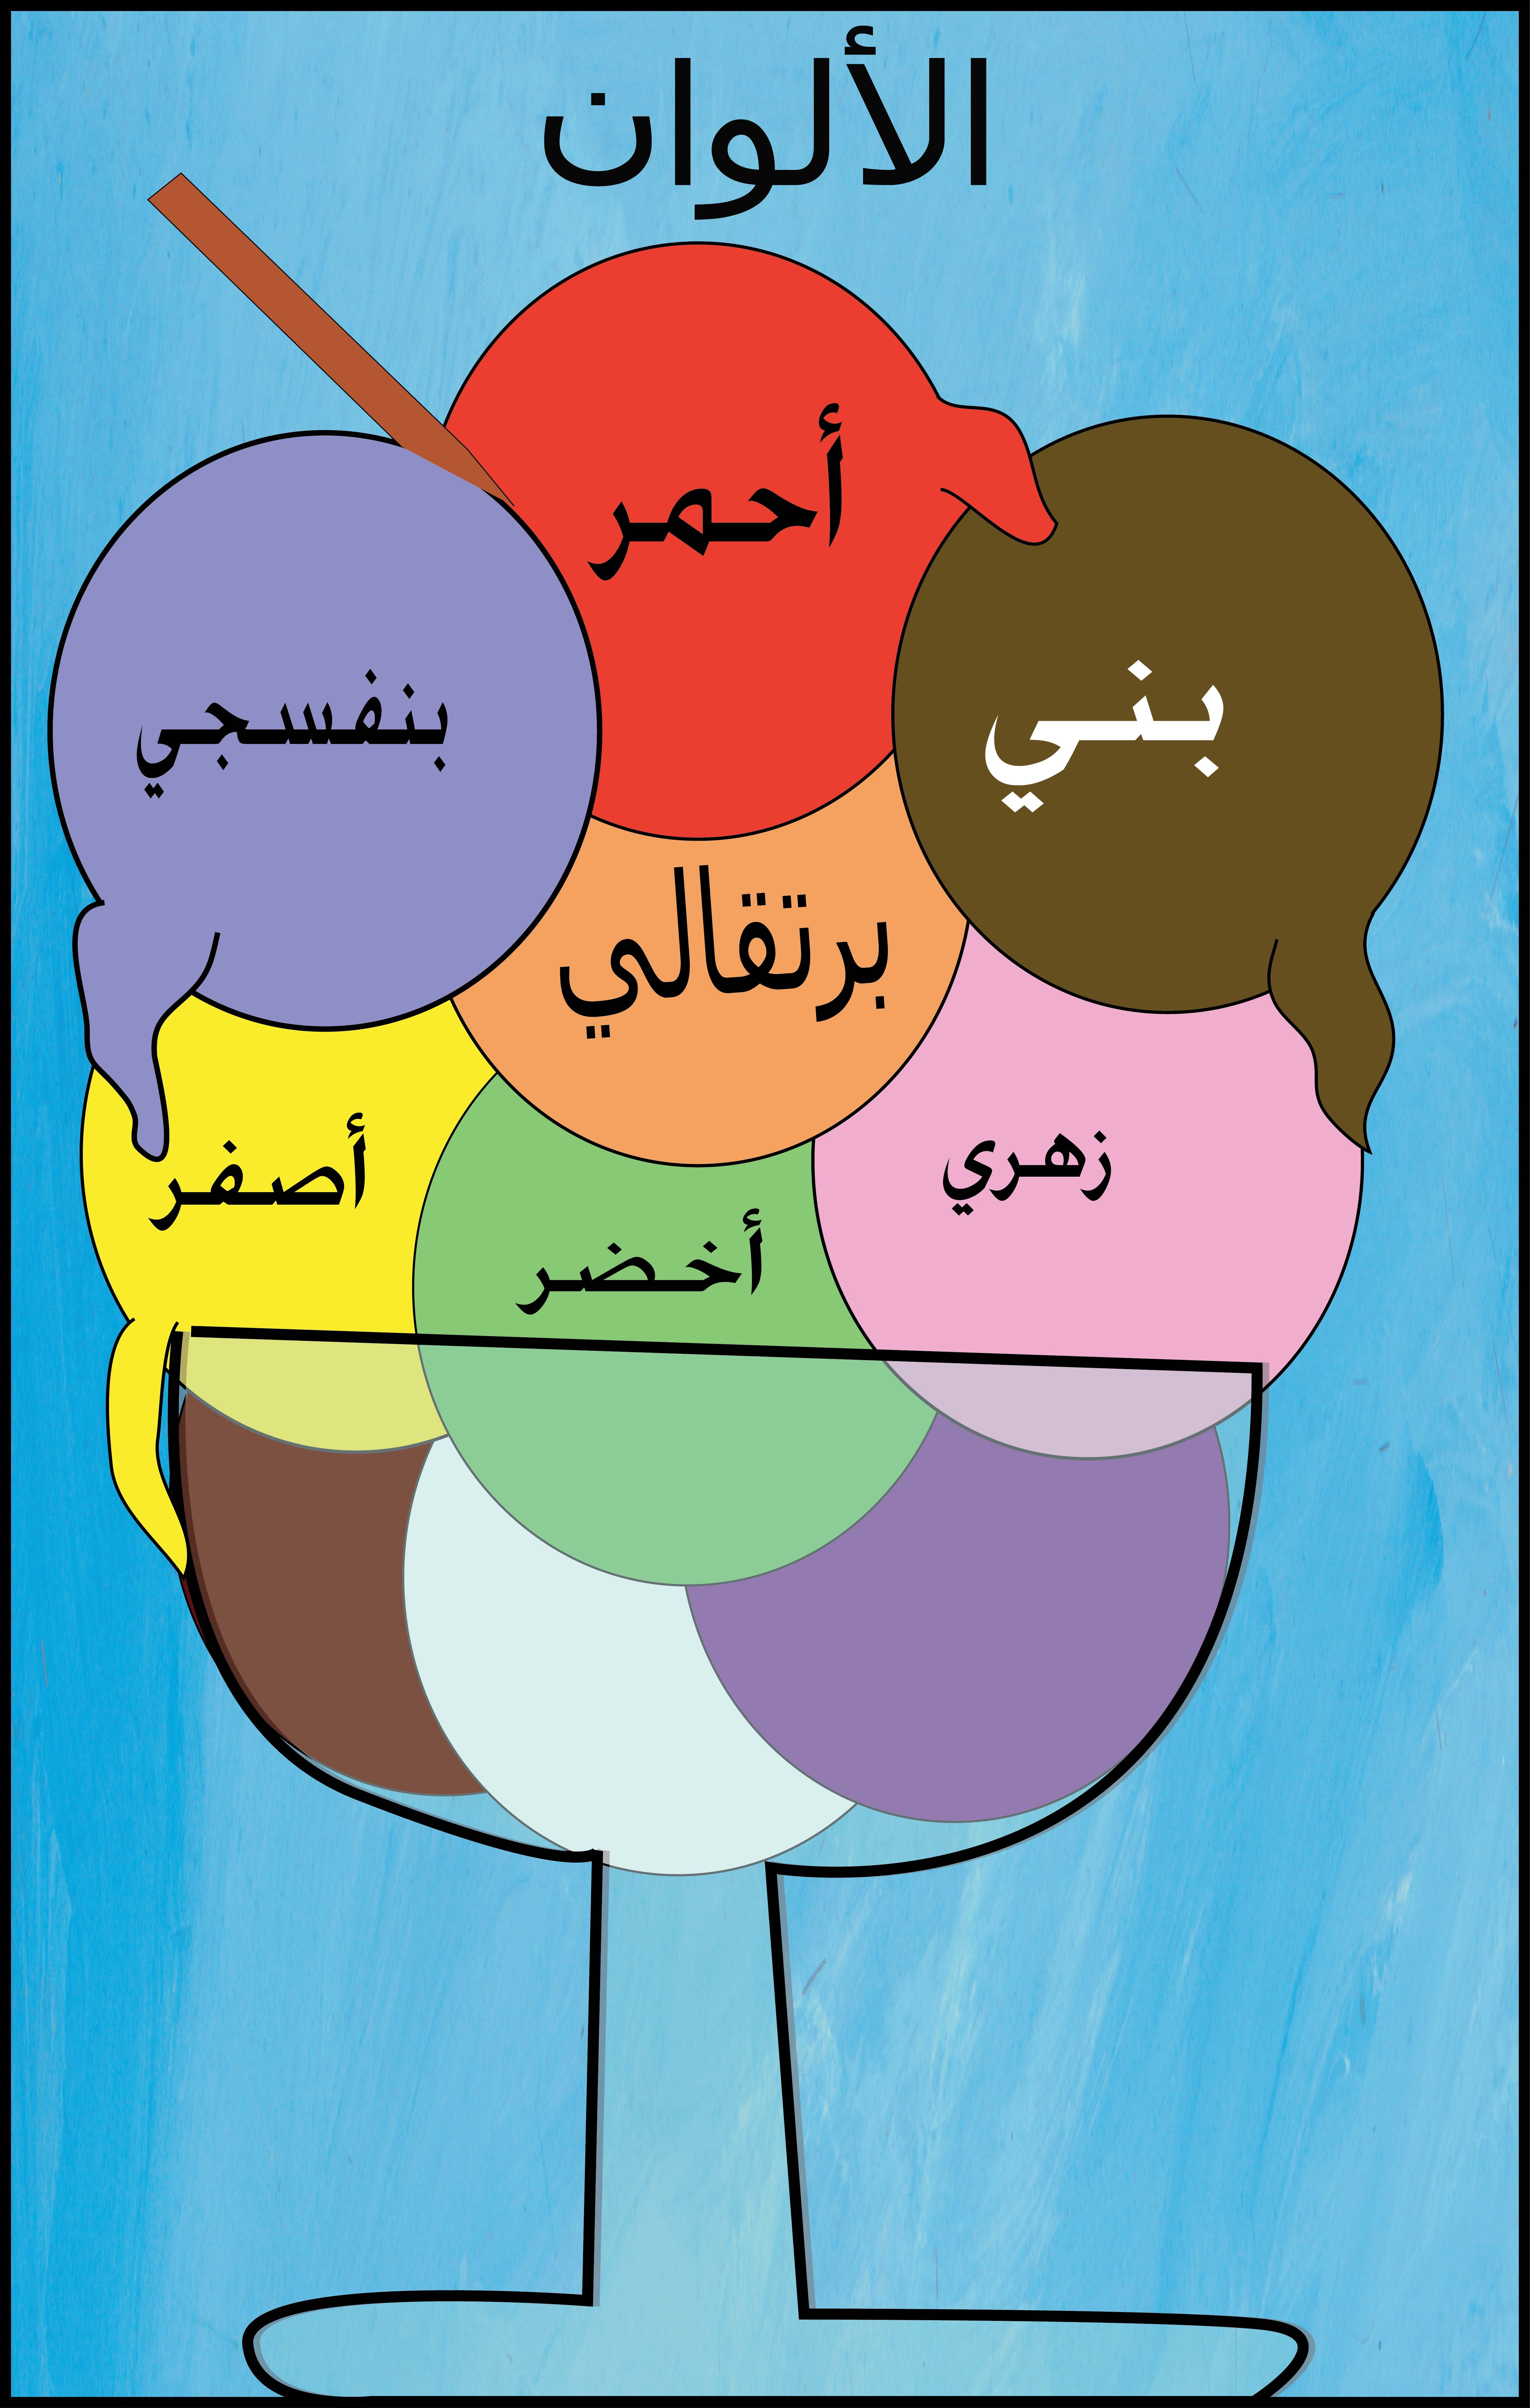 A Poster About Colors In Arabic